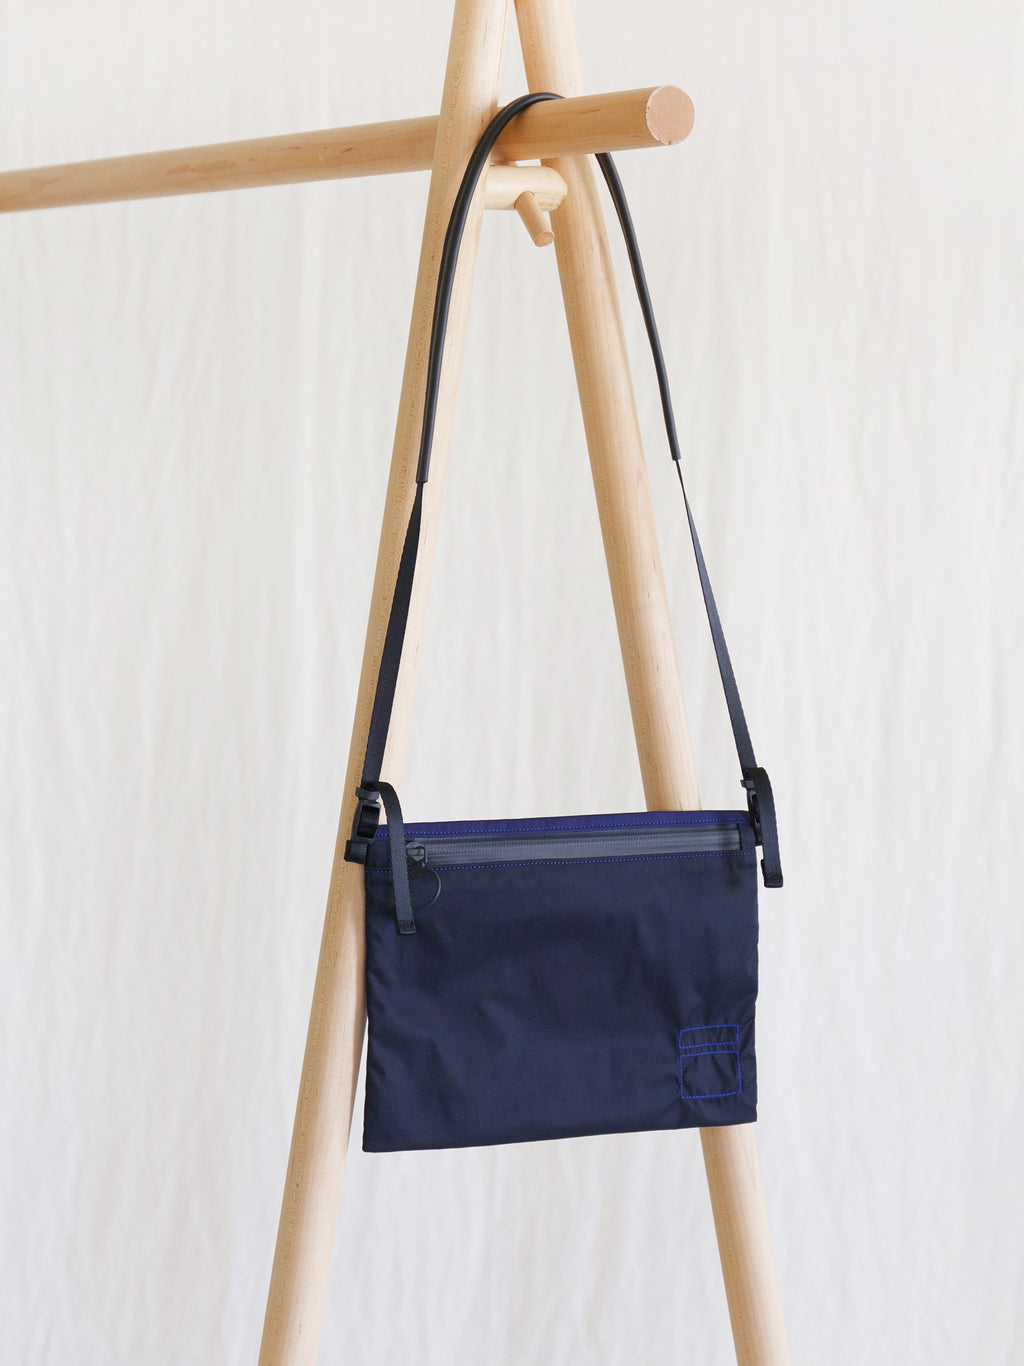 Namu Shop - Document Sacoche Bag